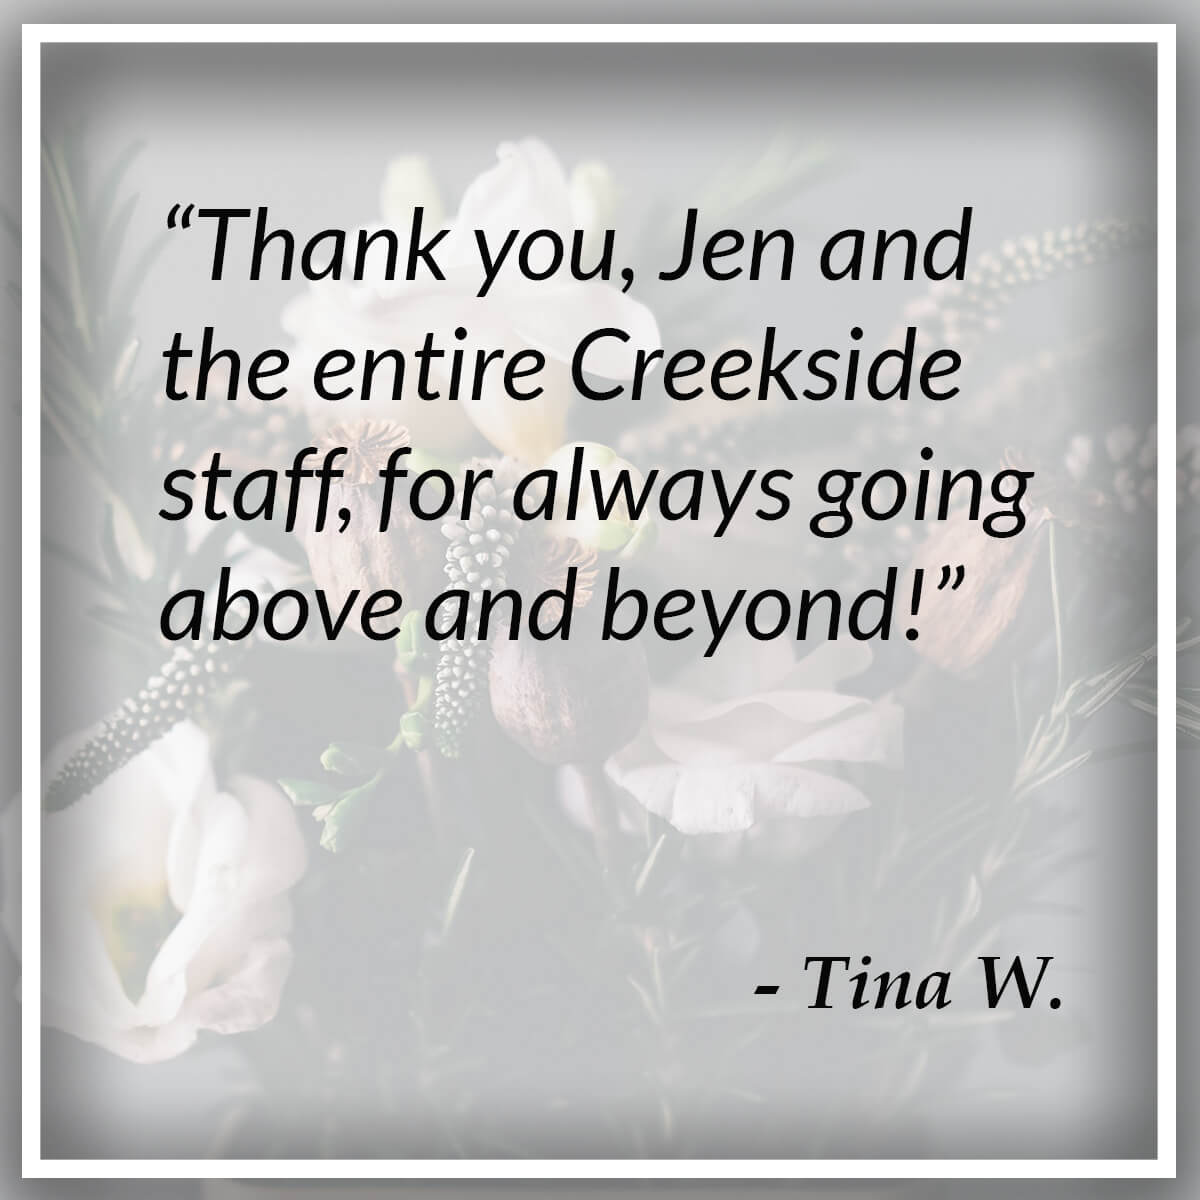 Thank you, Jen and the entire Creekside staff, for always going above & beyond! - Tina W.